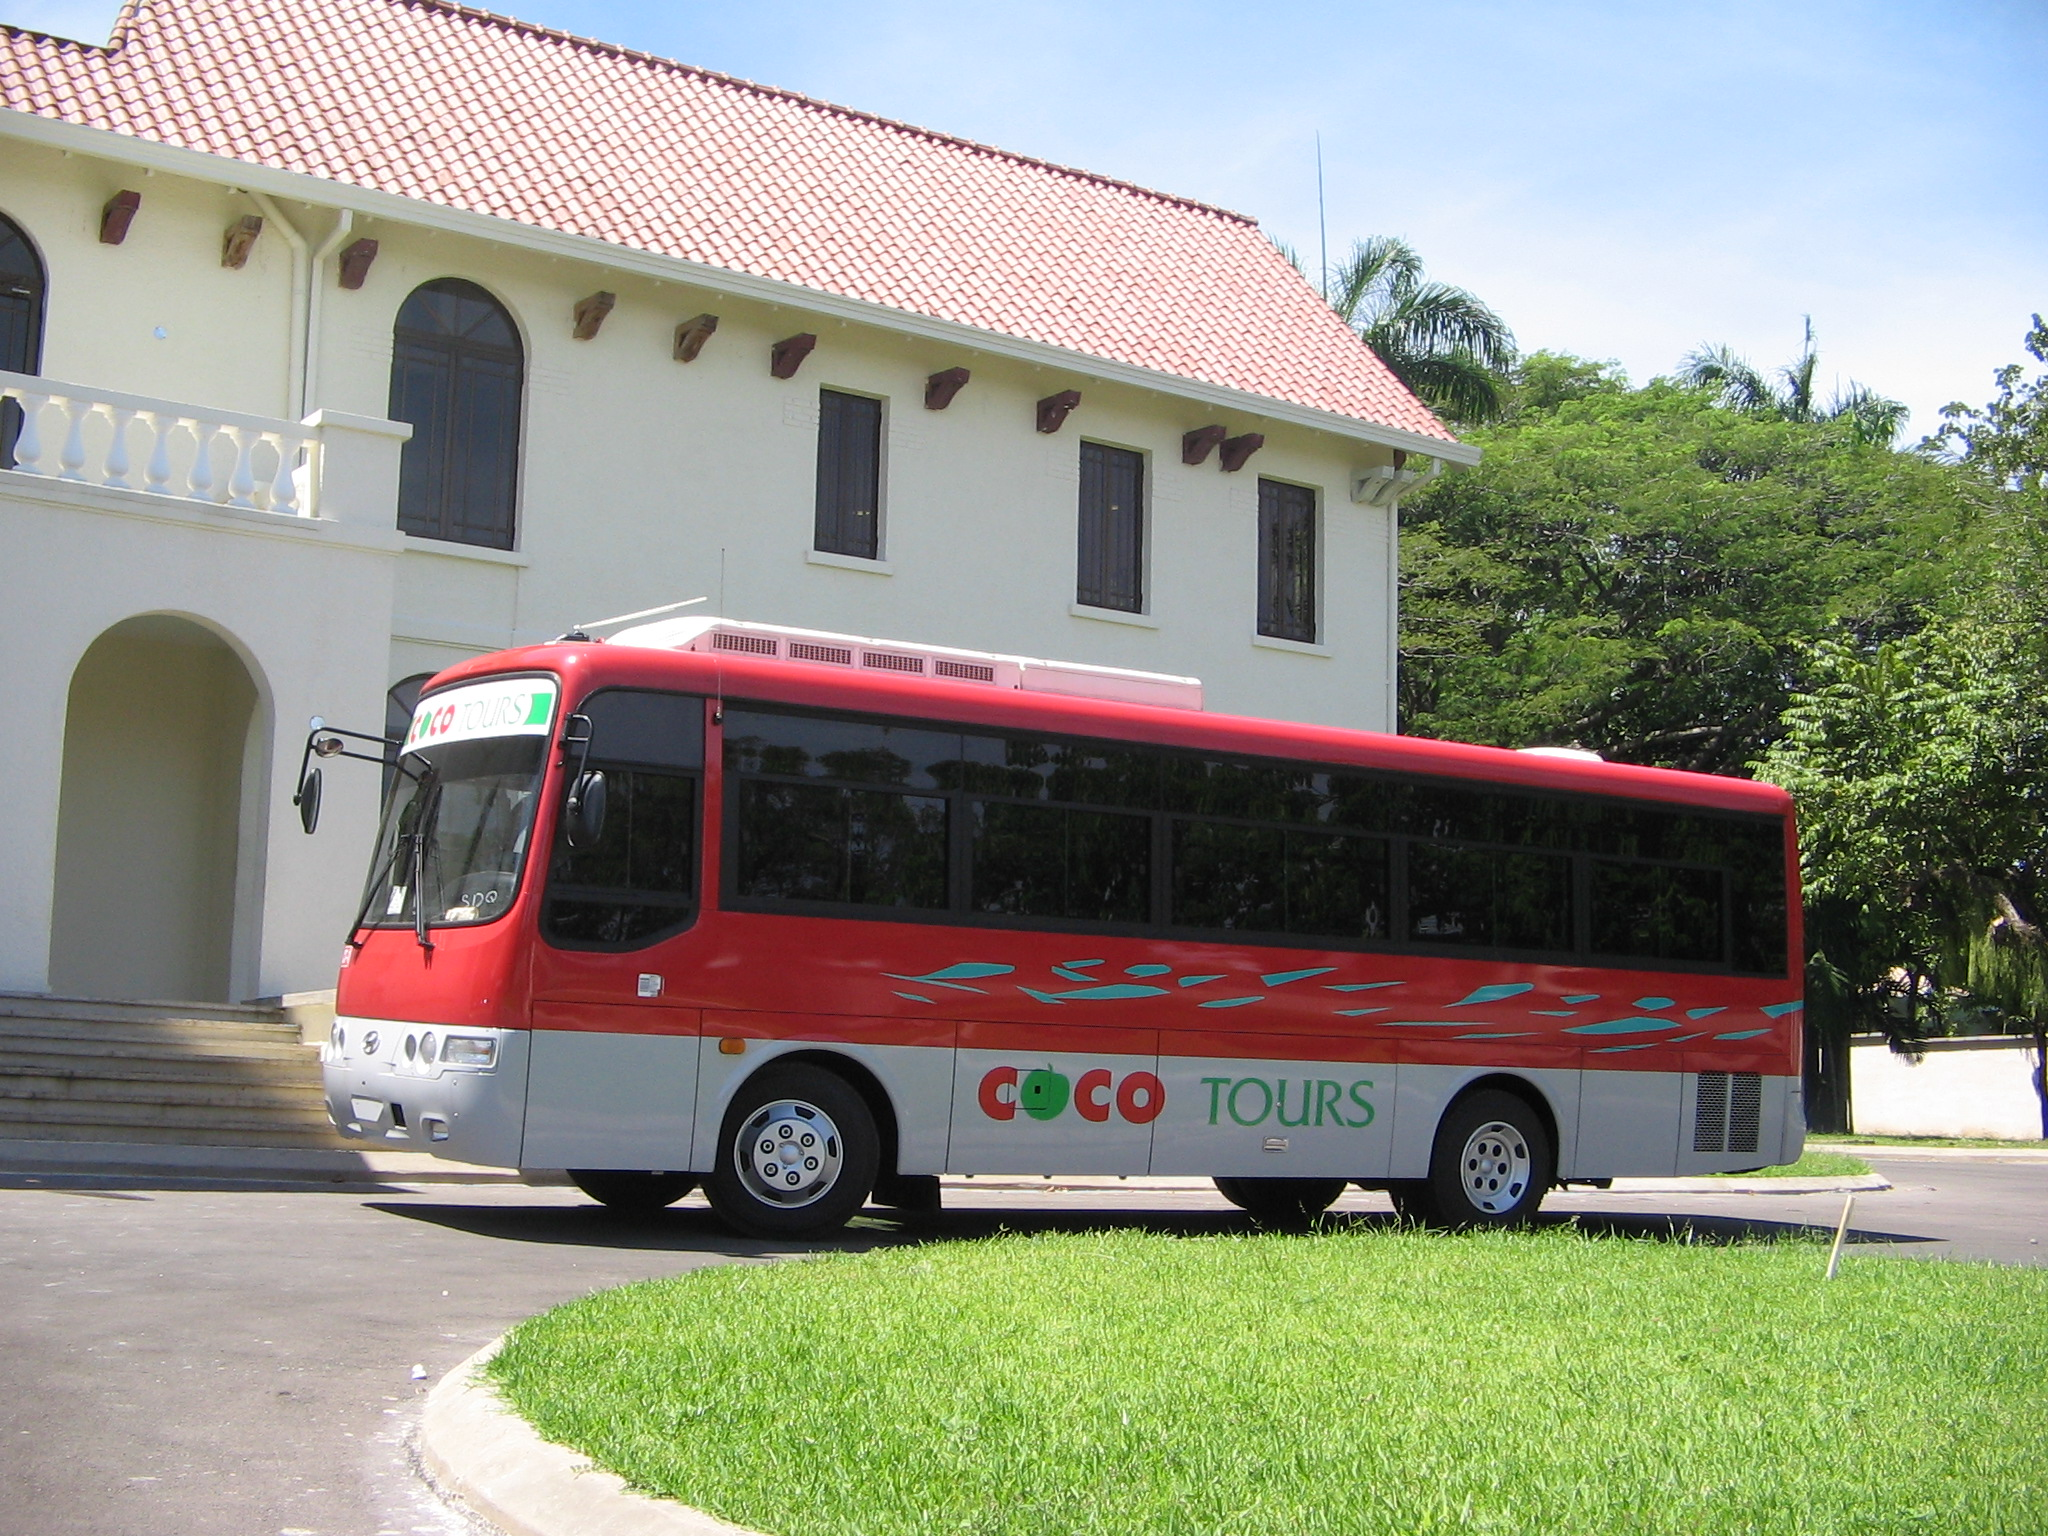 Larger Cocotours bus used on the route from Amber Cove to Samana